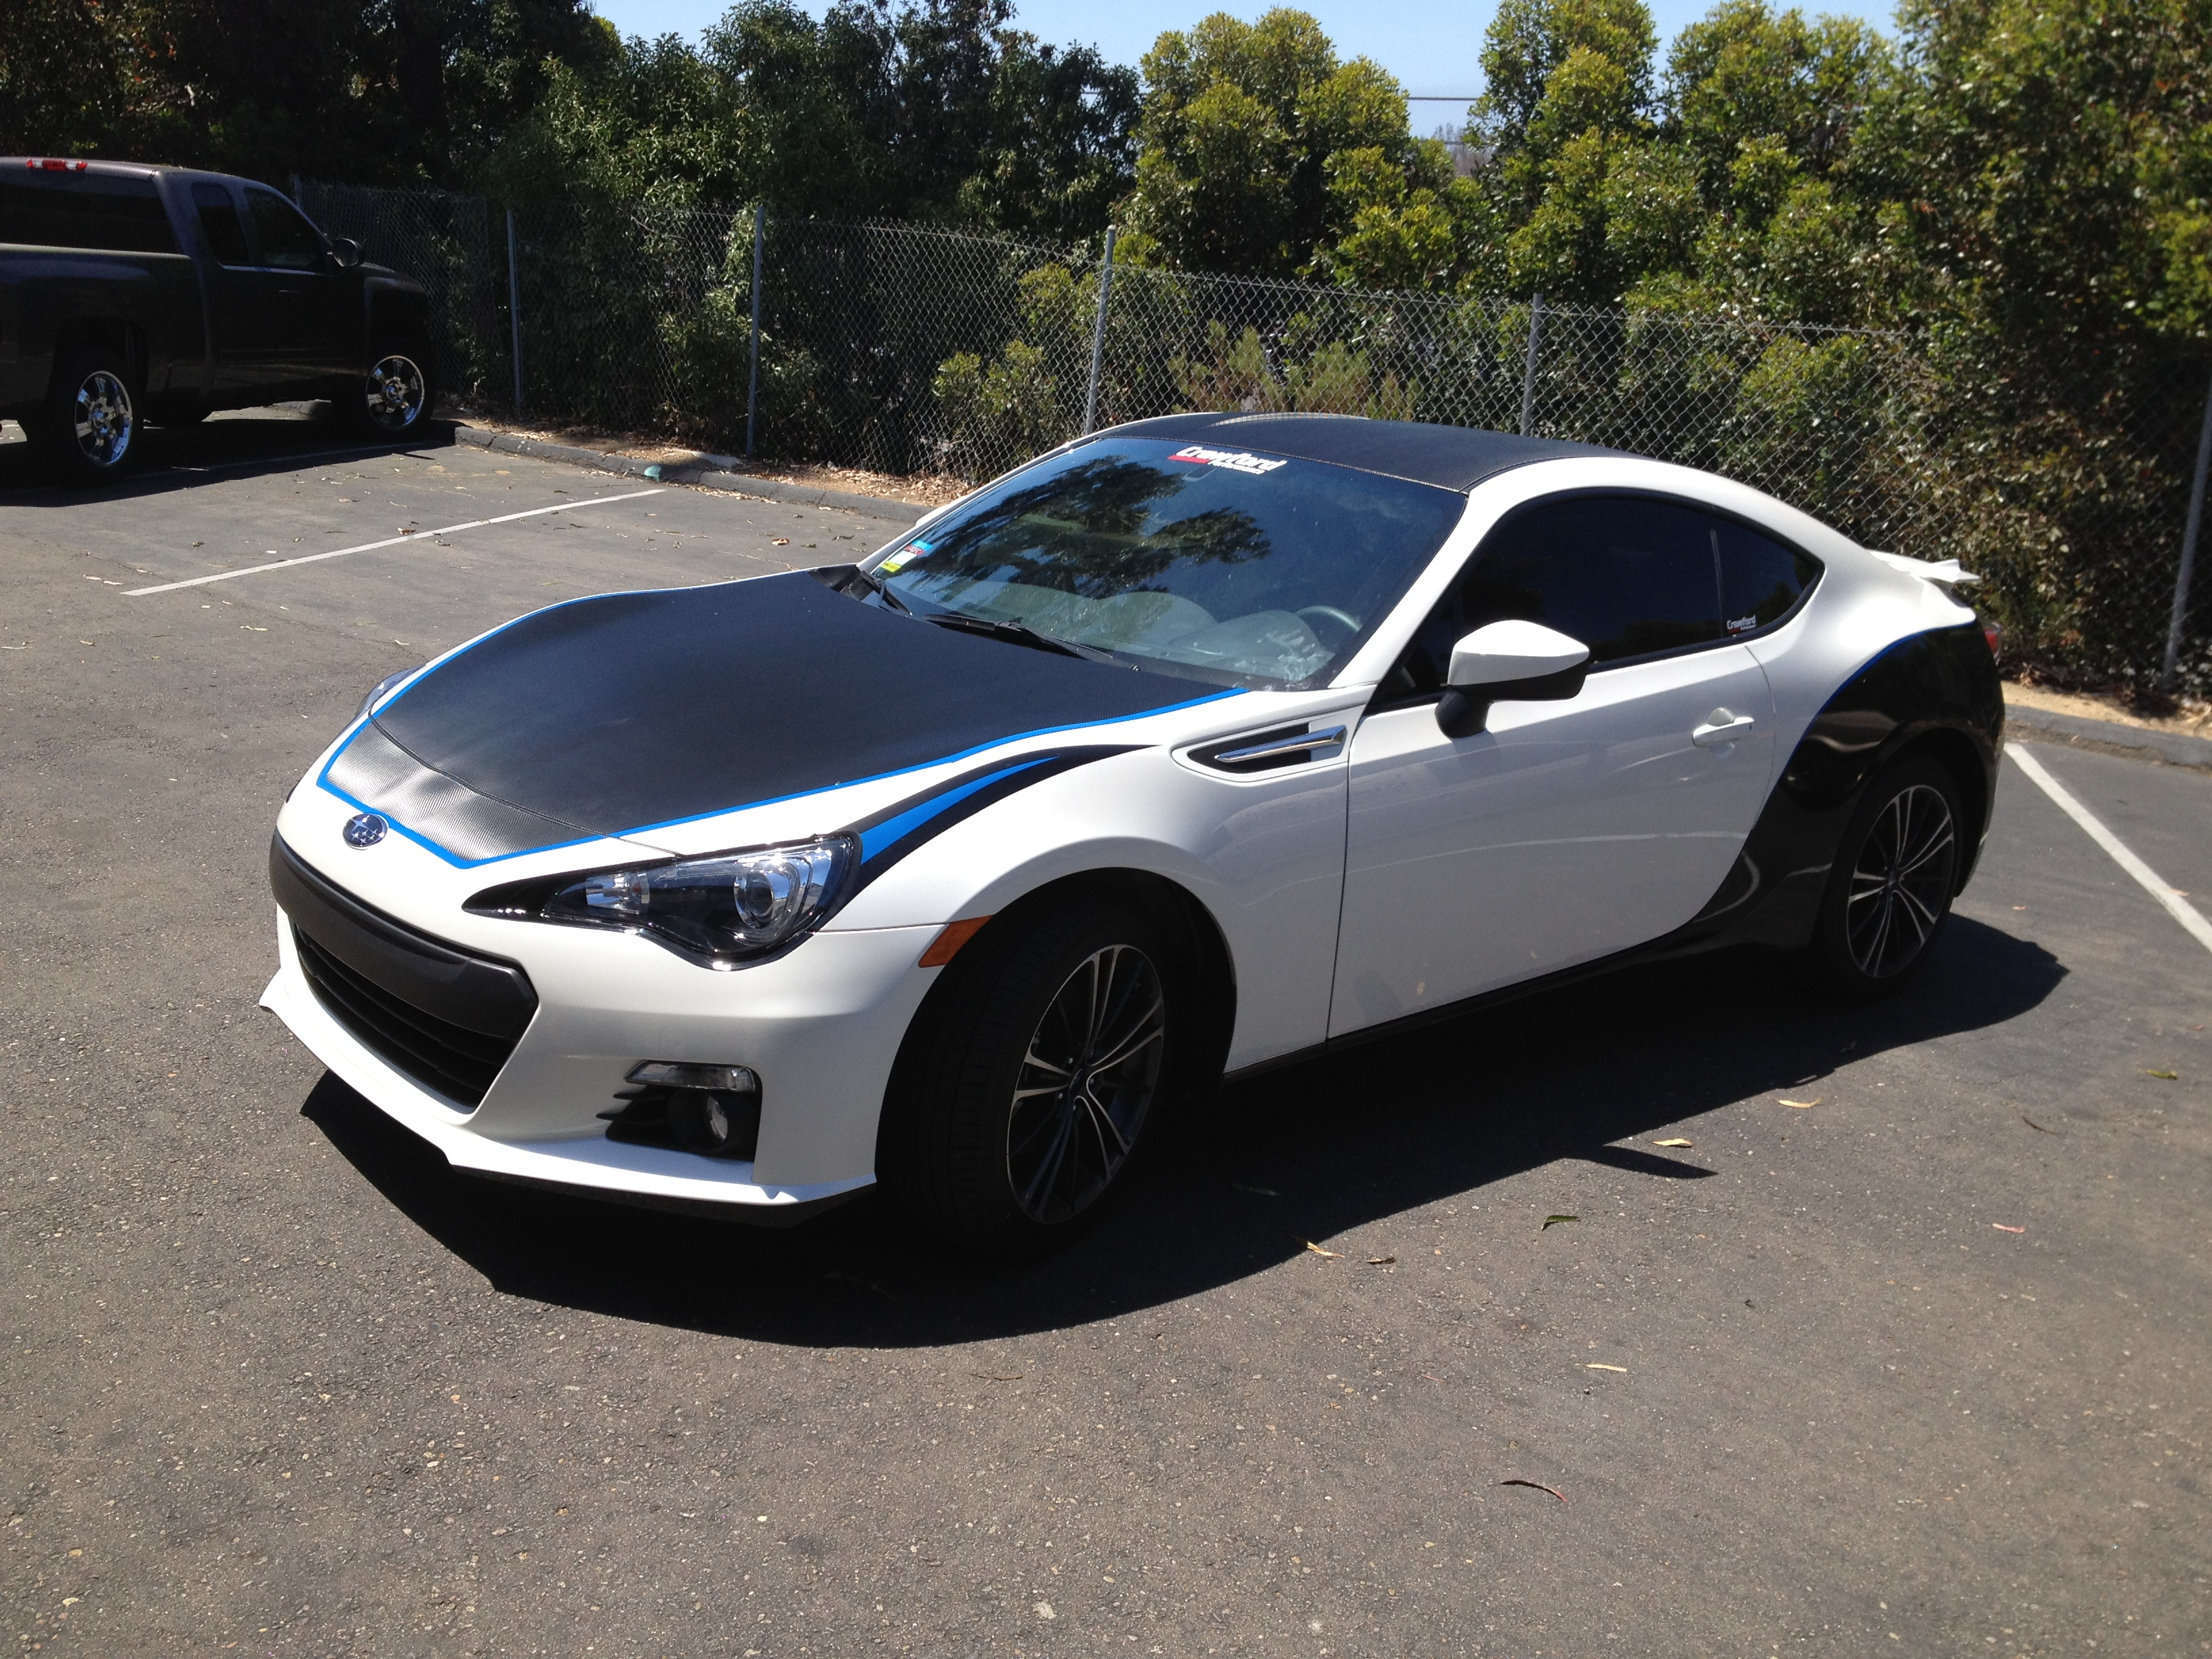 Auto Vinyl Wrap >> Other Vinyl Wrap Projects San Diego Window Tinting And Vinyl Wrap